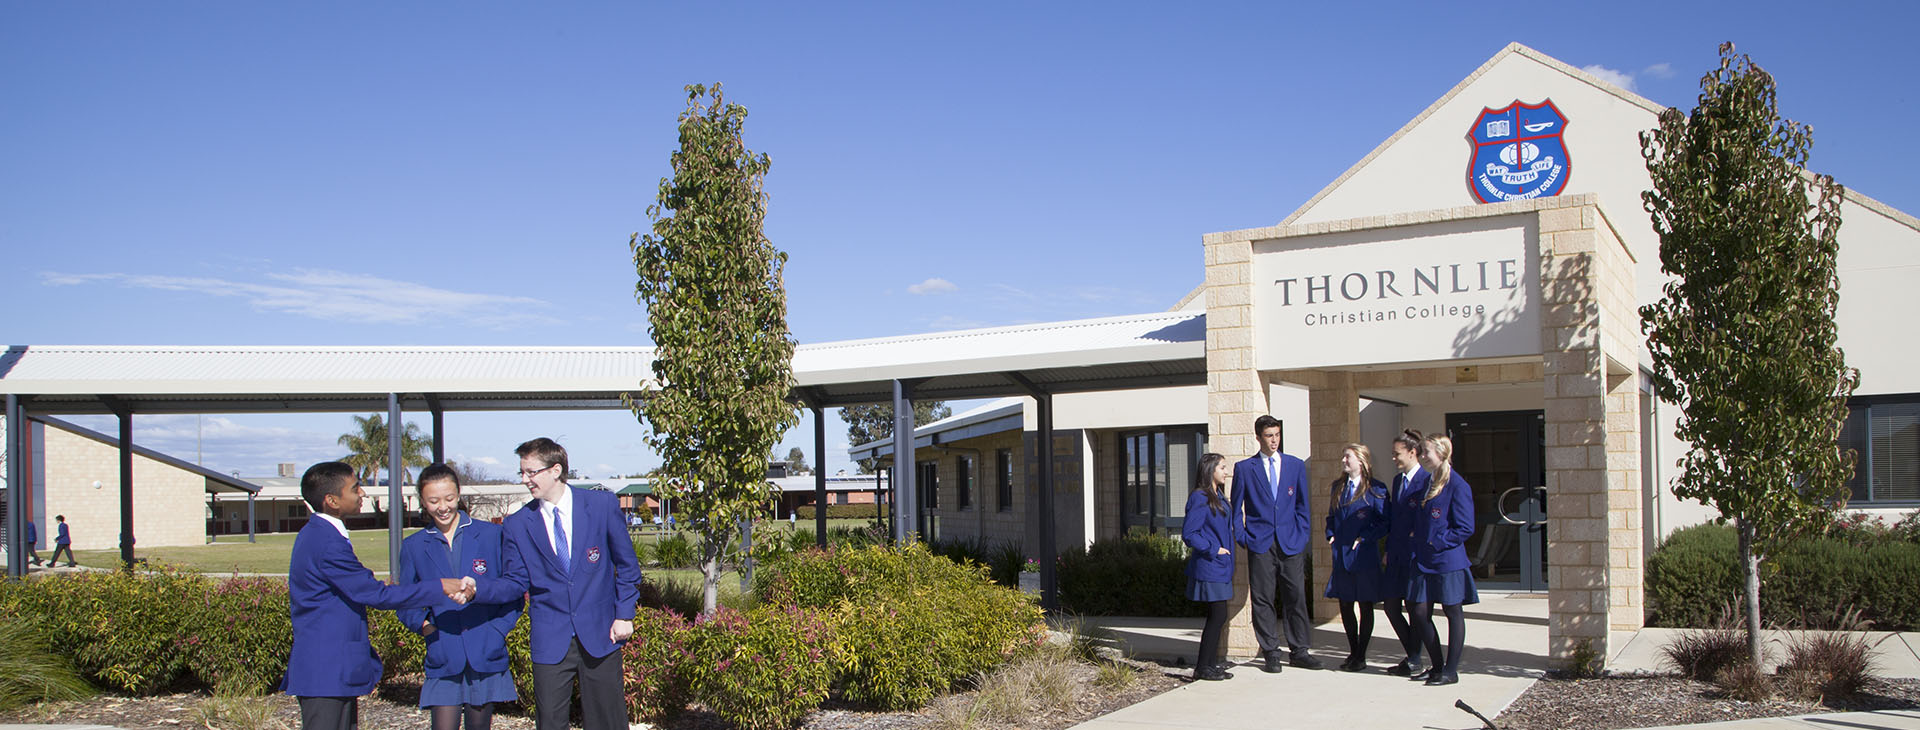 Thornlie Christian College Admin